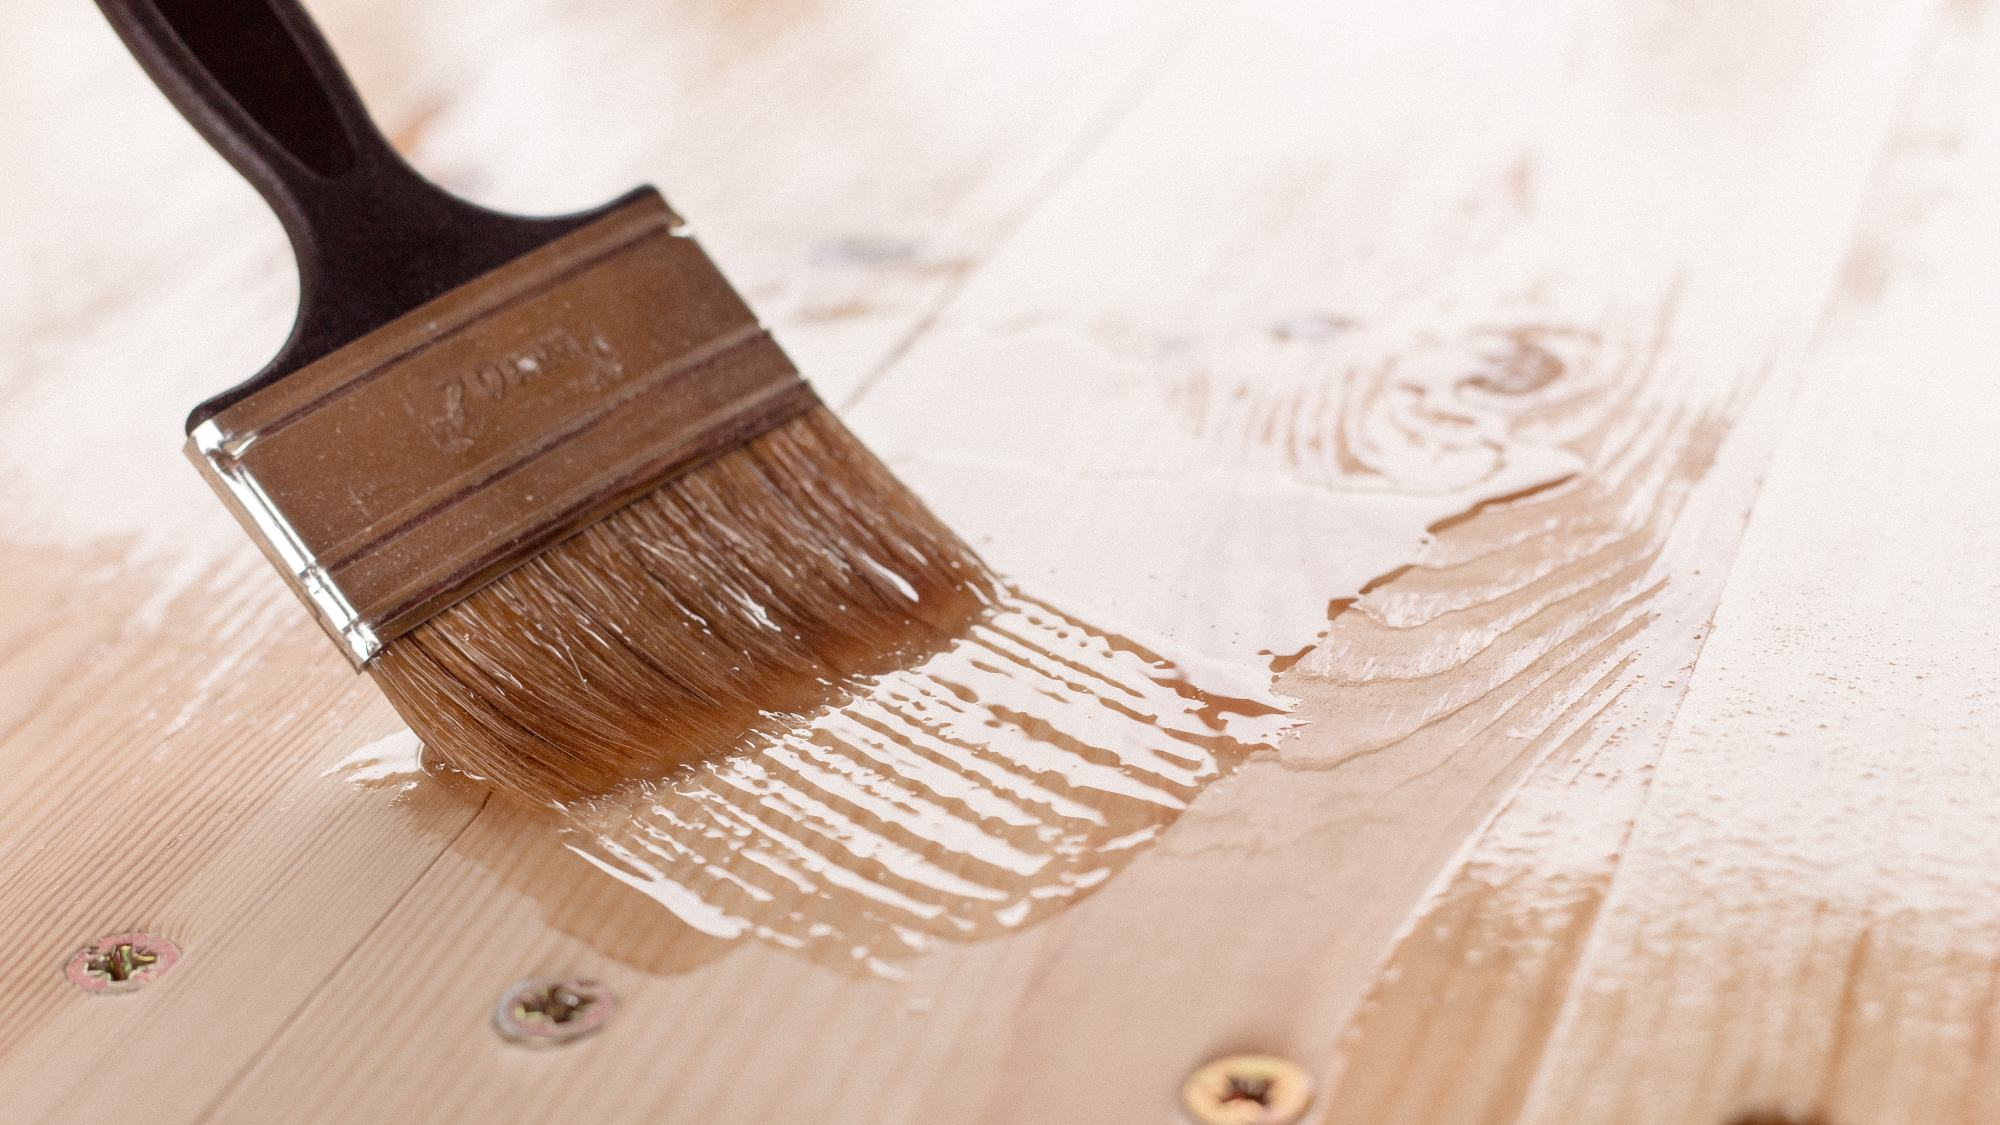 clear stain being applied on wood with brush